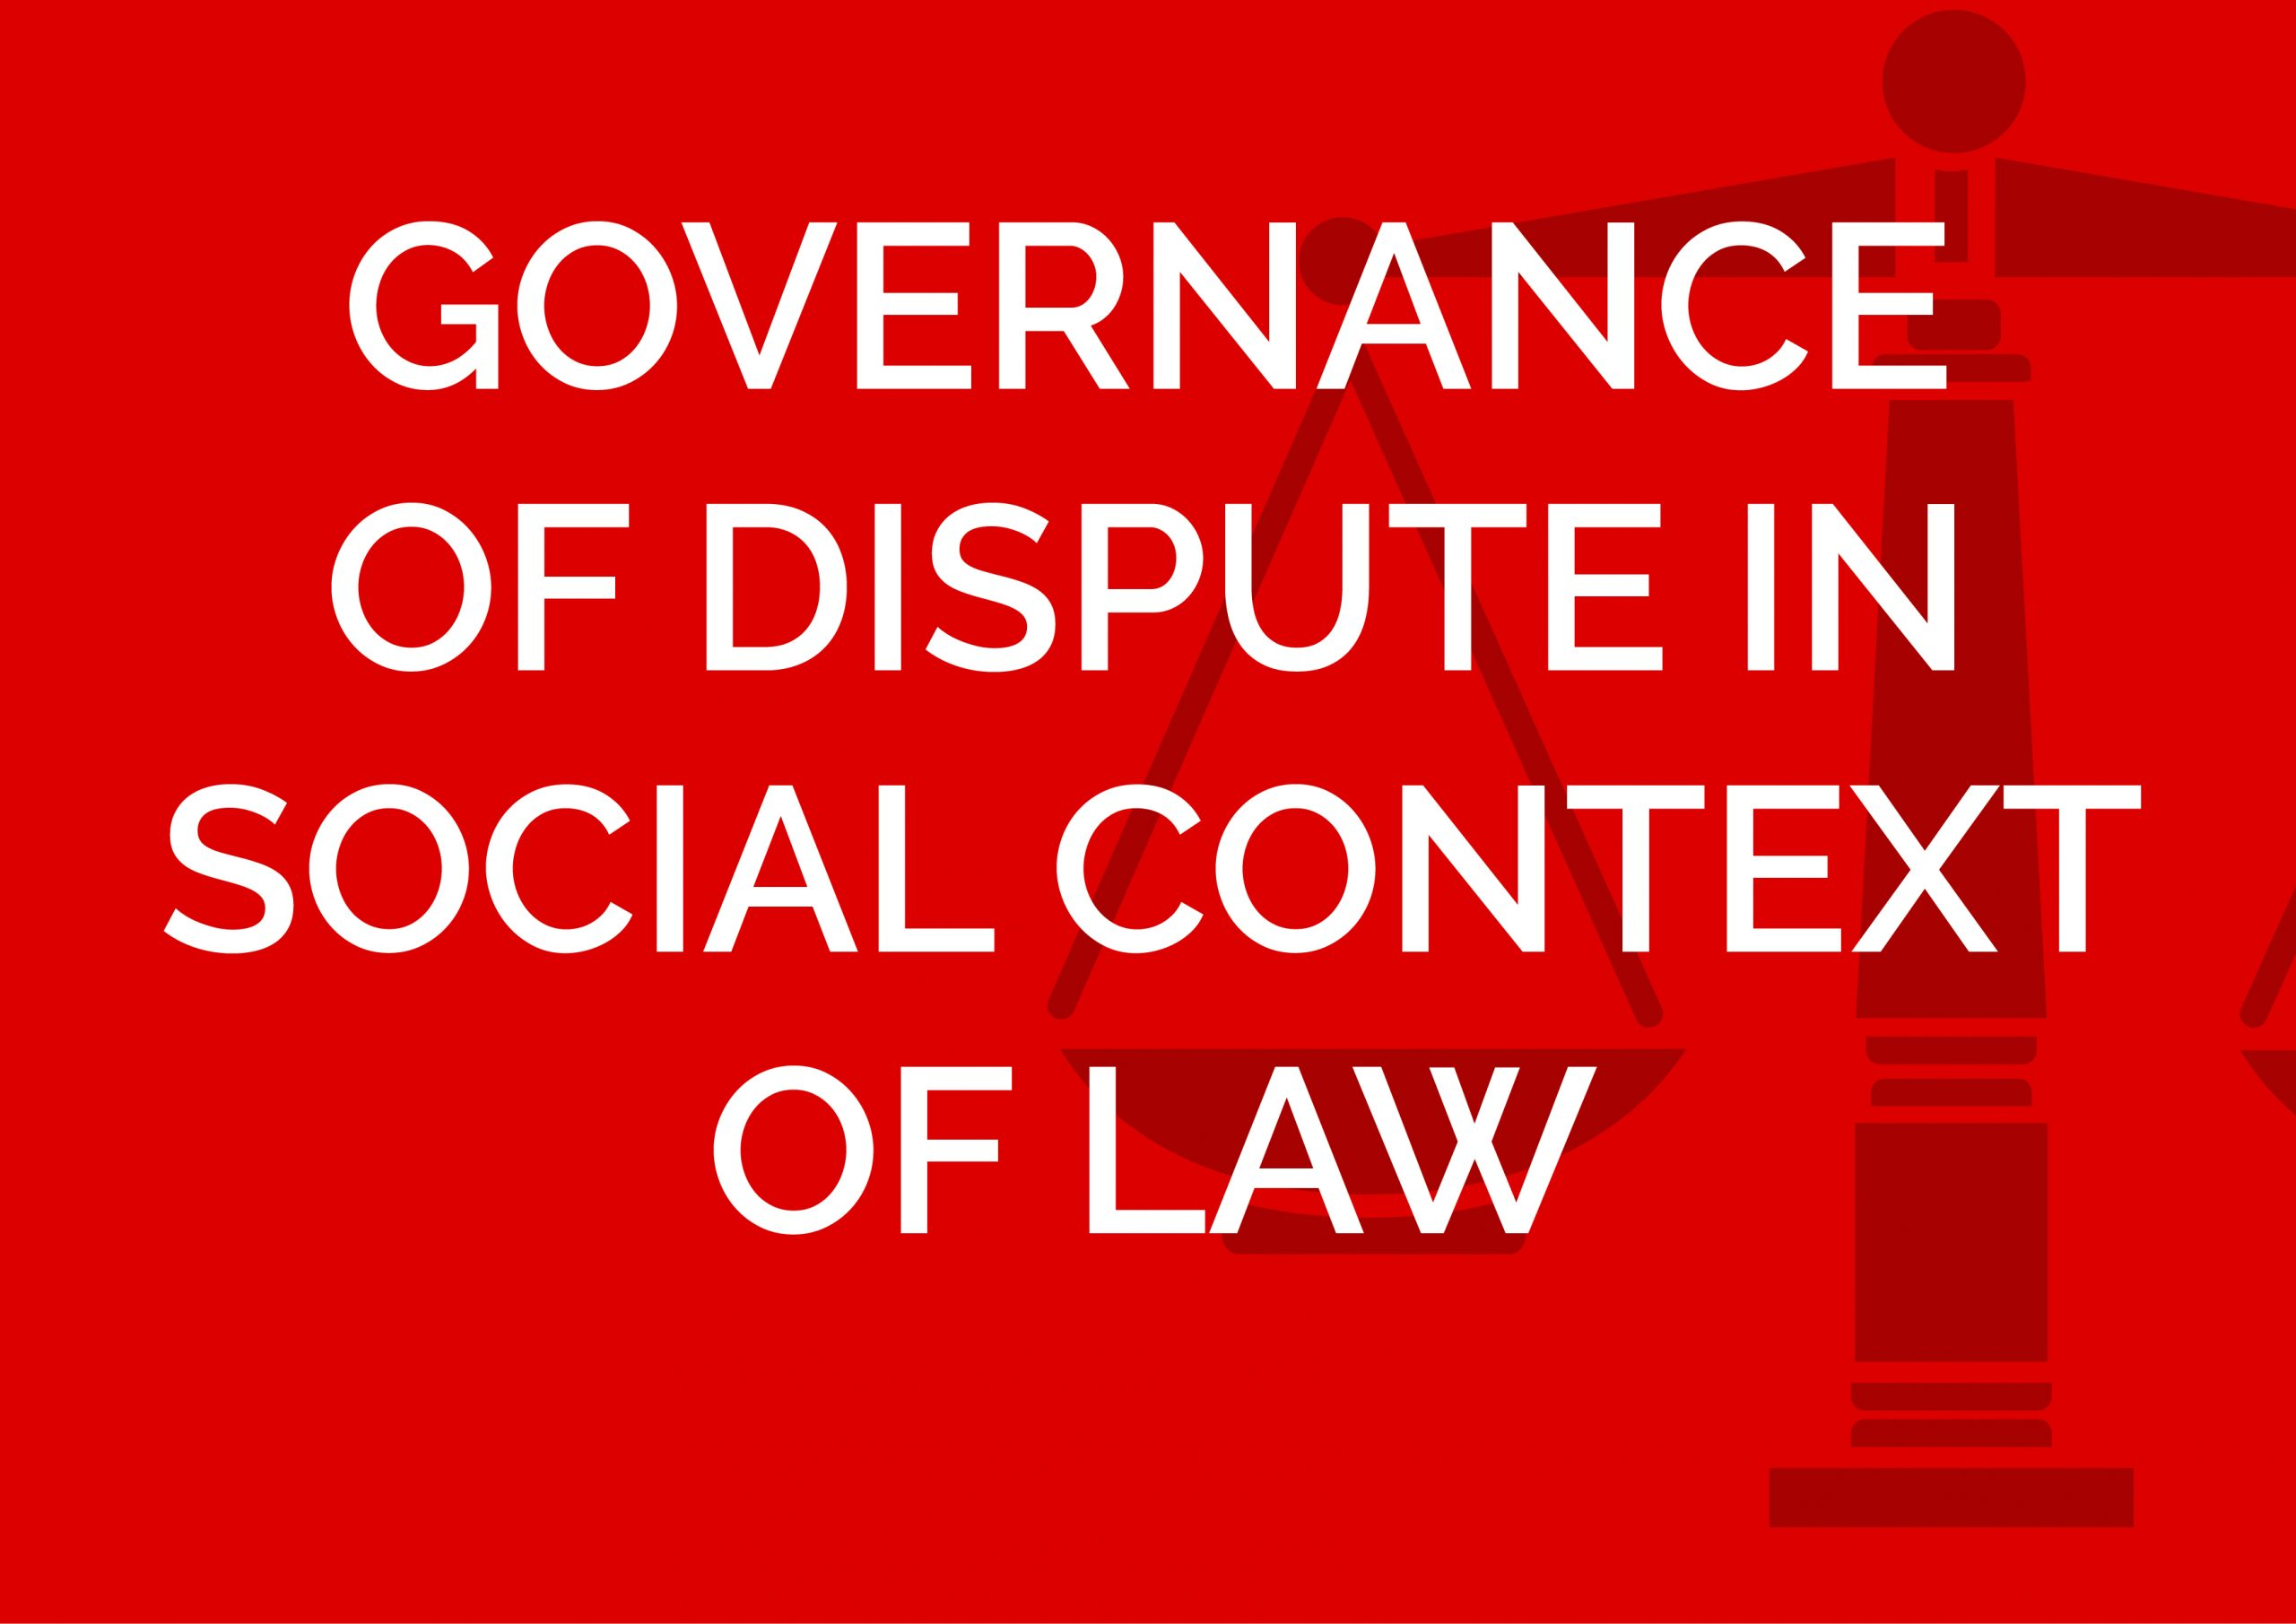 Governance of Dispute in Social Context of Law